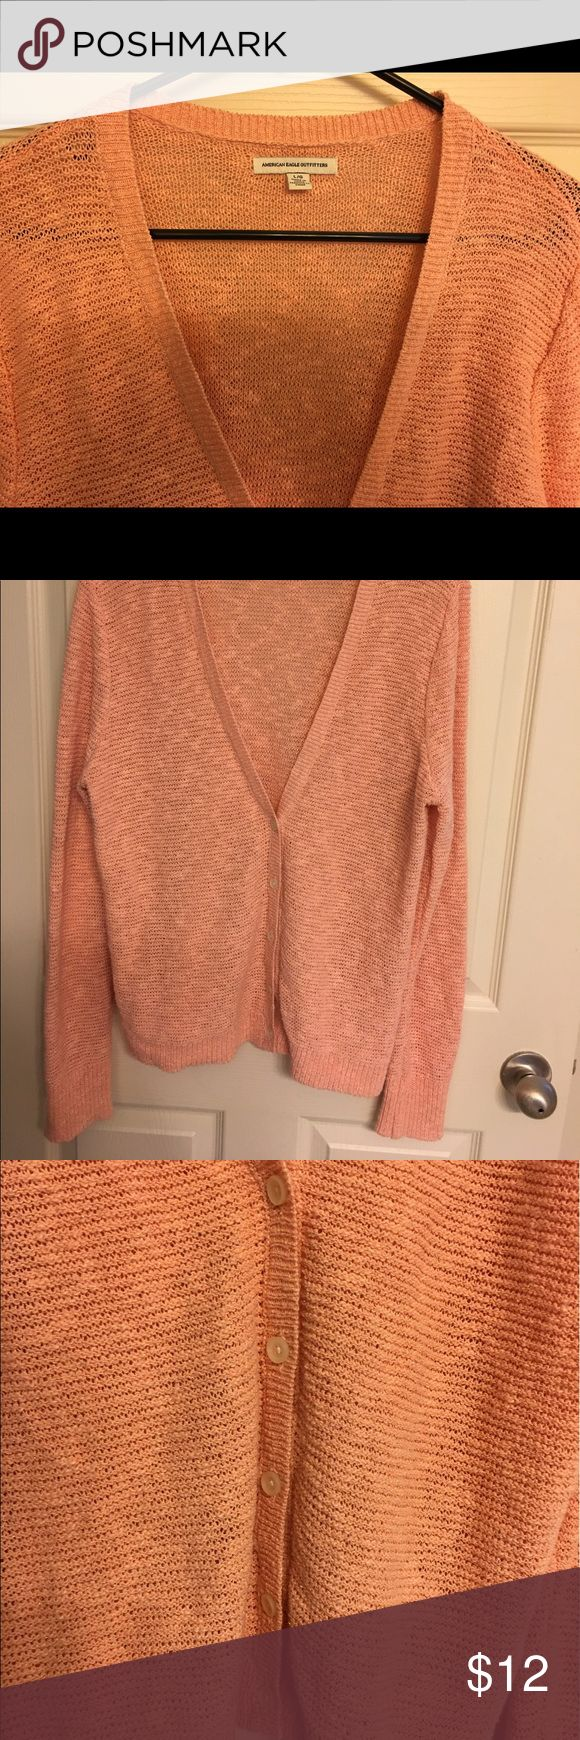 American Eagle Outfitters Cardigan American Eagle Outfitters Light Coral Shimmery Cardigan American Eagle Outfitters Sweaters Cardigans